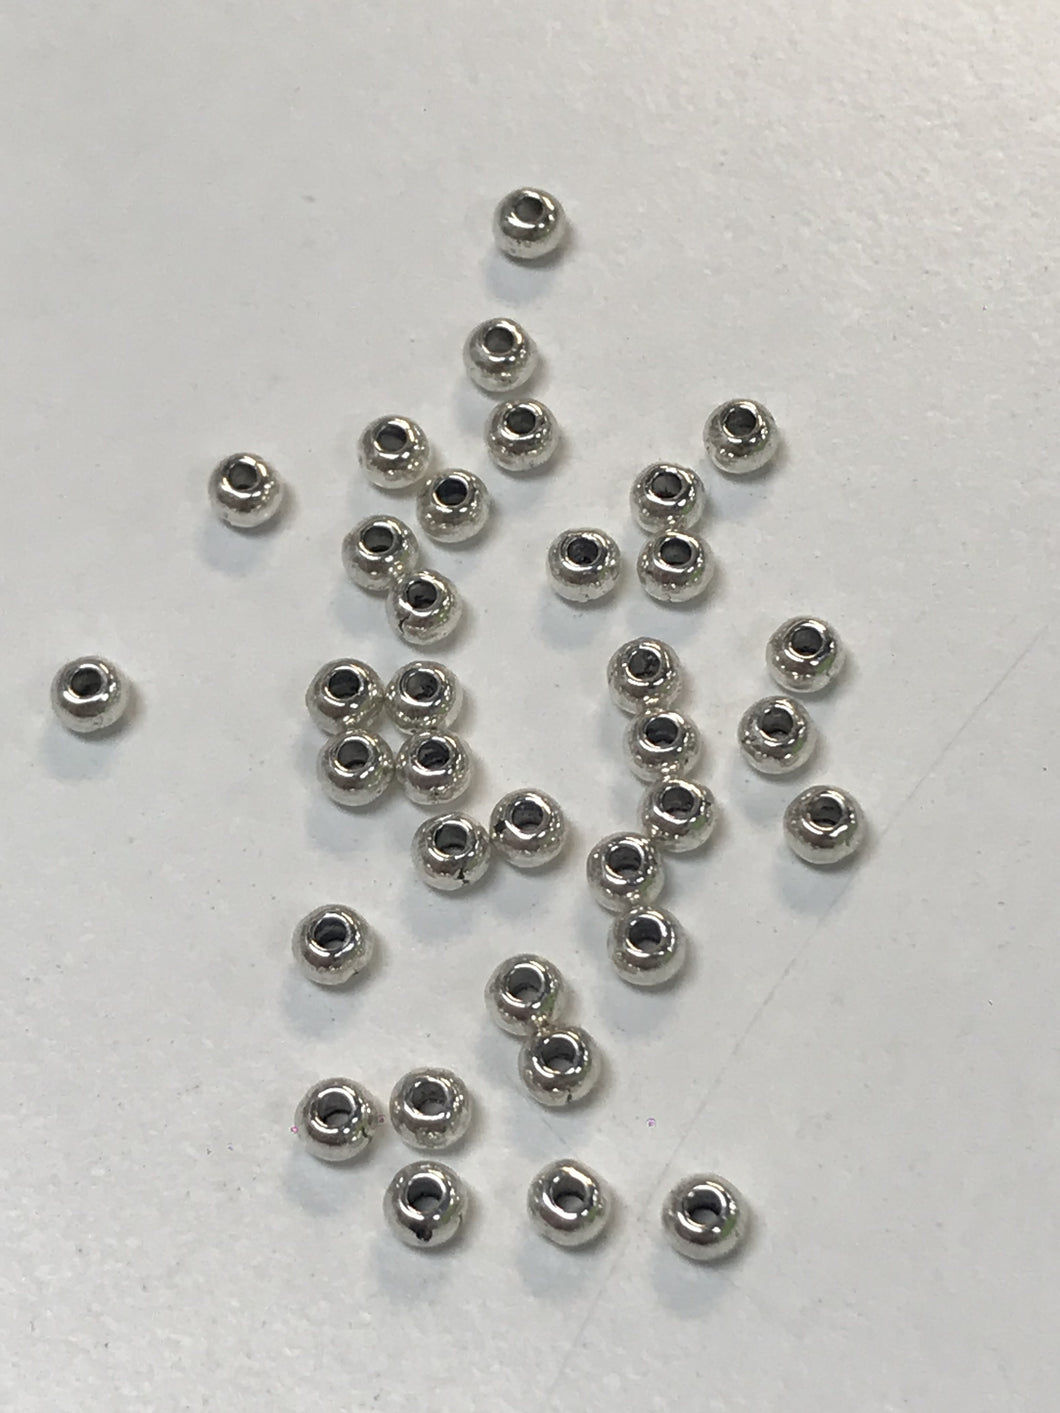 3mm Pewter Silver Beads